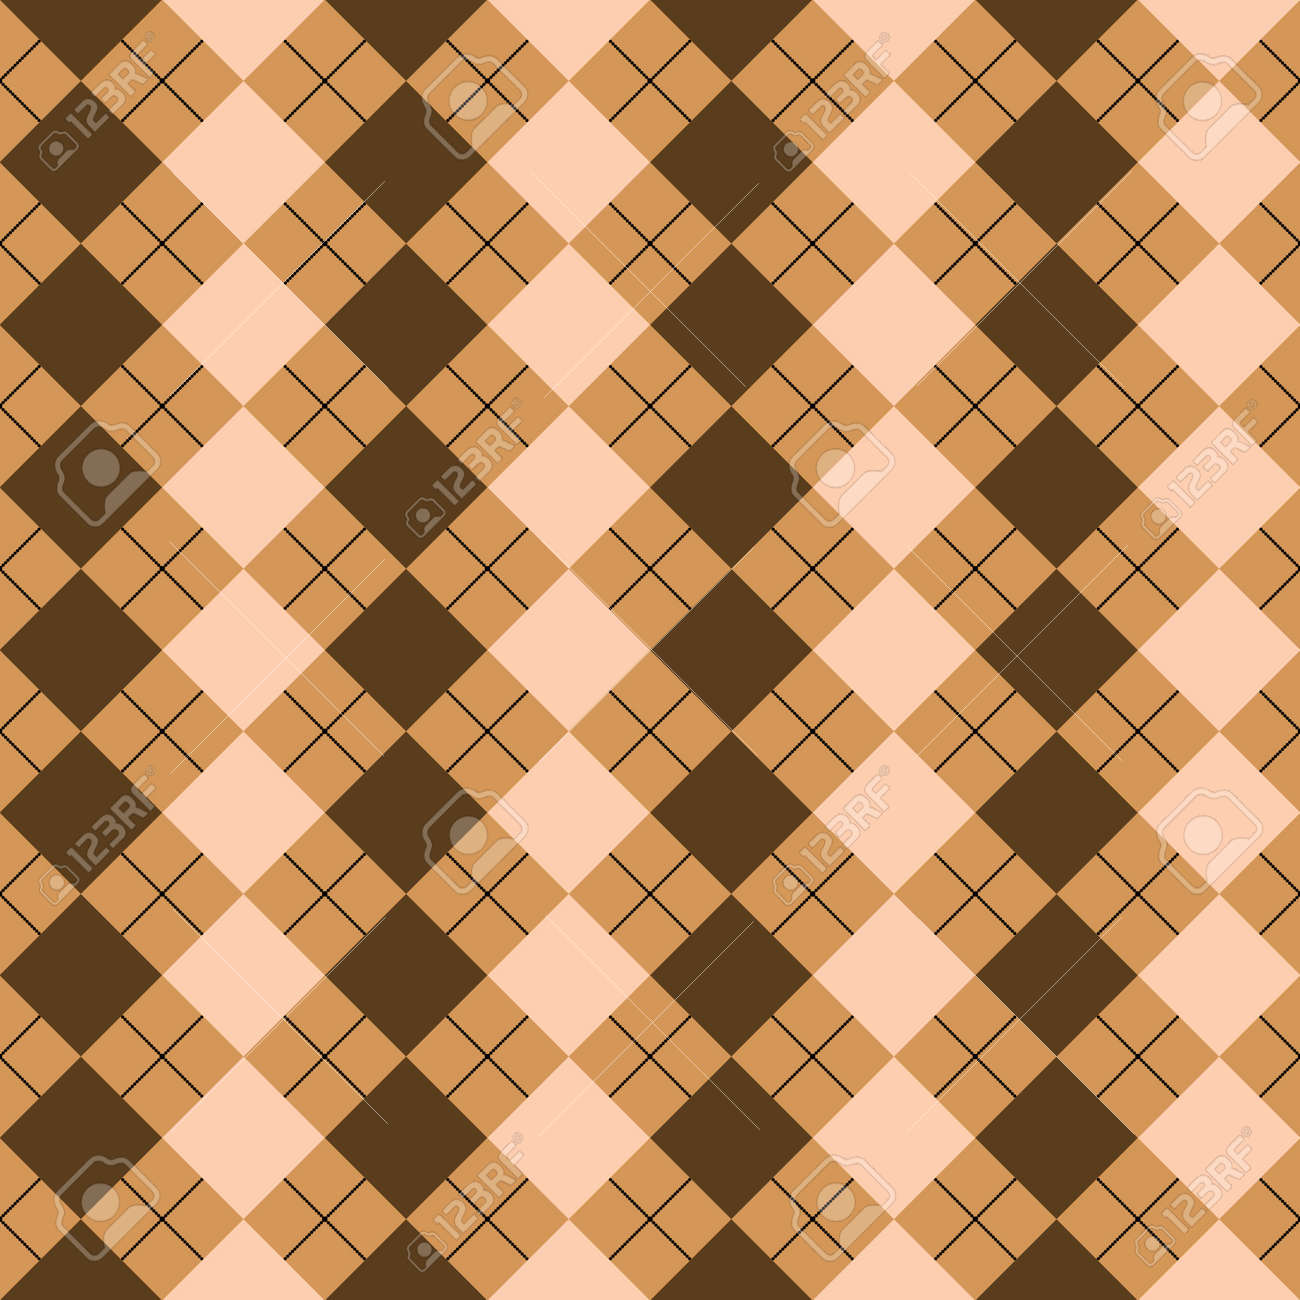 sweater texture mixed brown colors, art illustration, more textures in my gallery Stock Illustration - 7336420